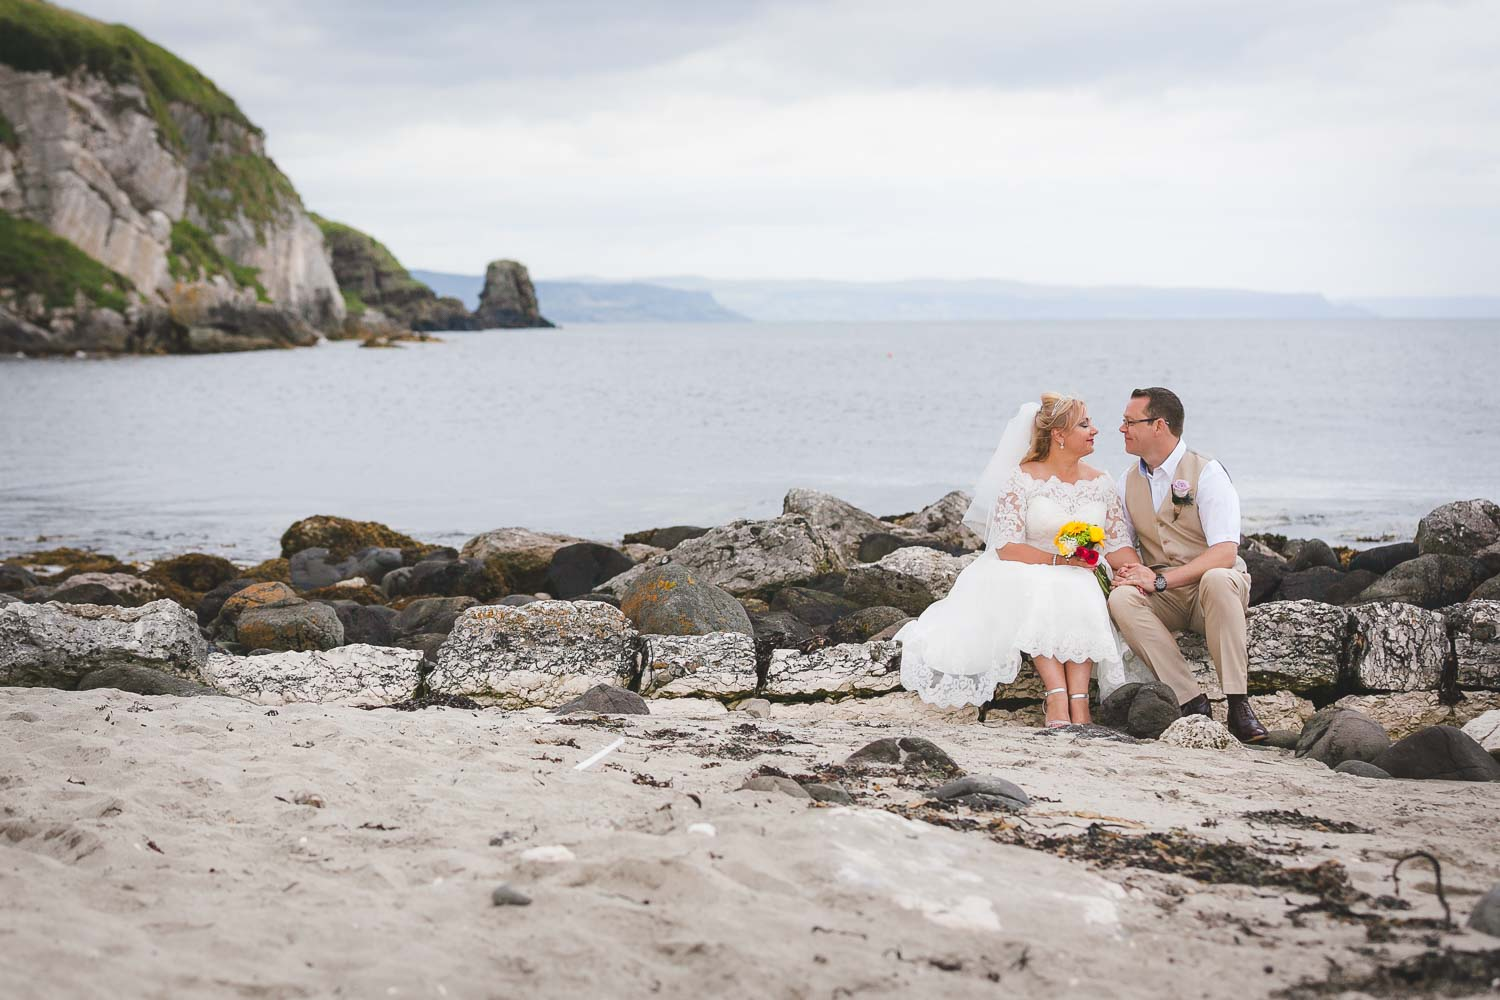 Bride and groom sitting on rocks at beach